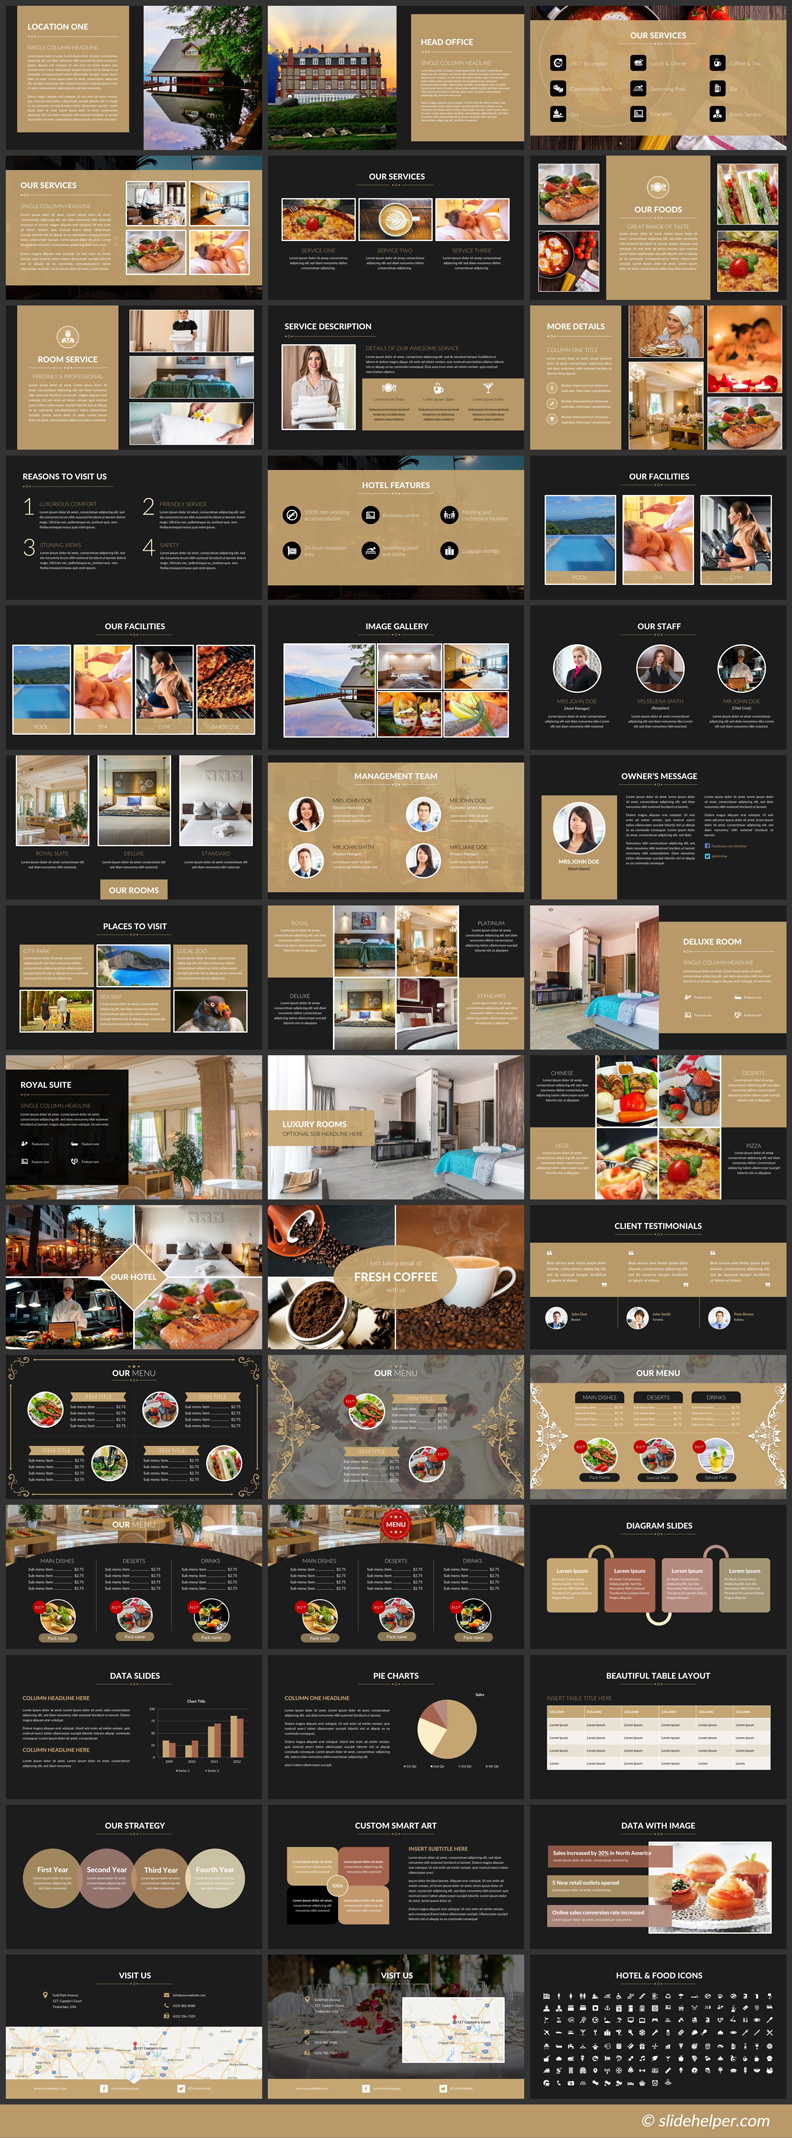 hotel PowerPoint presentation templates for luxury wellness spa management